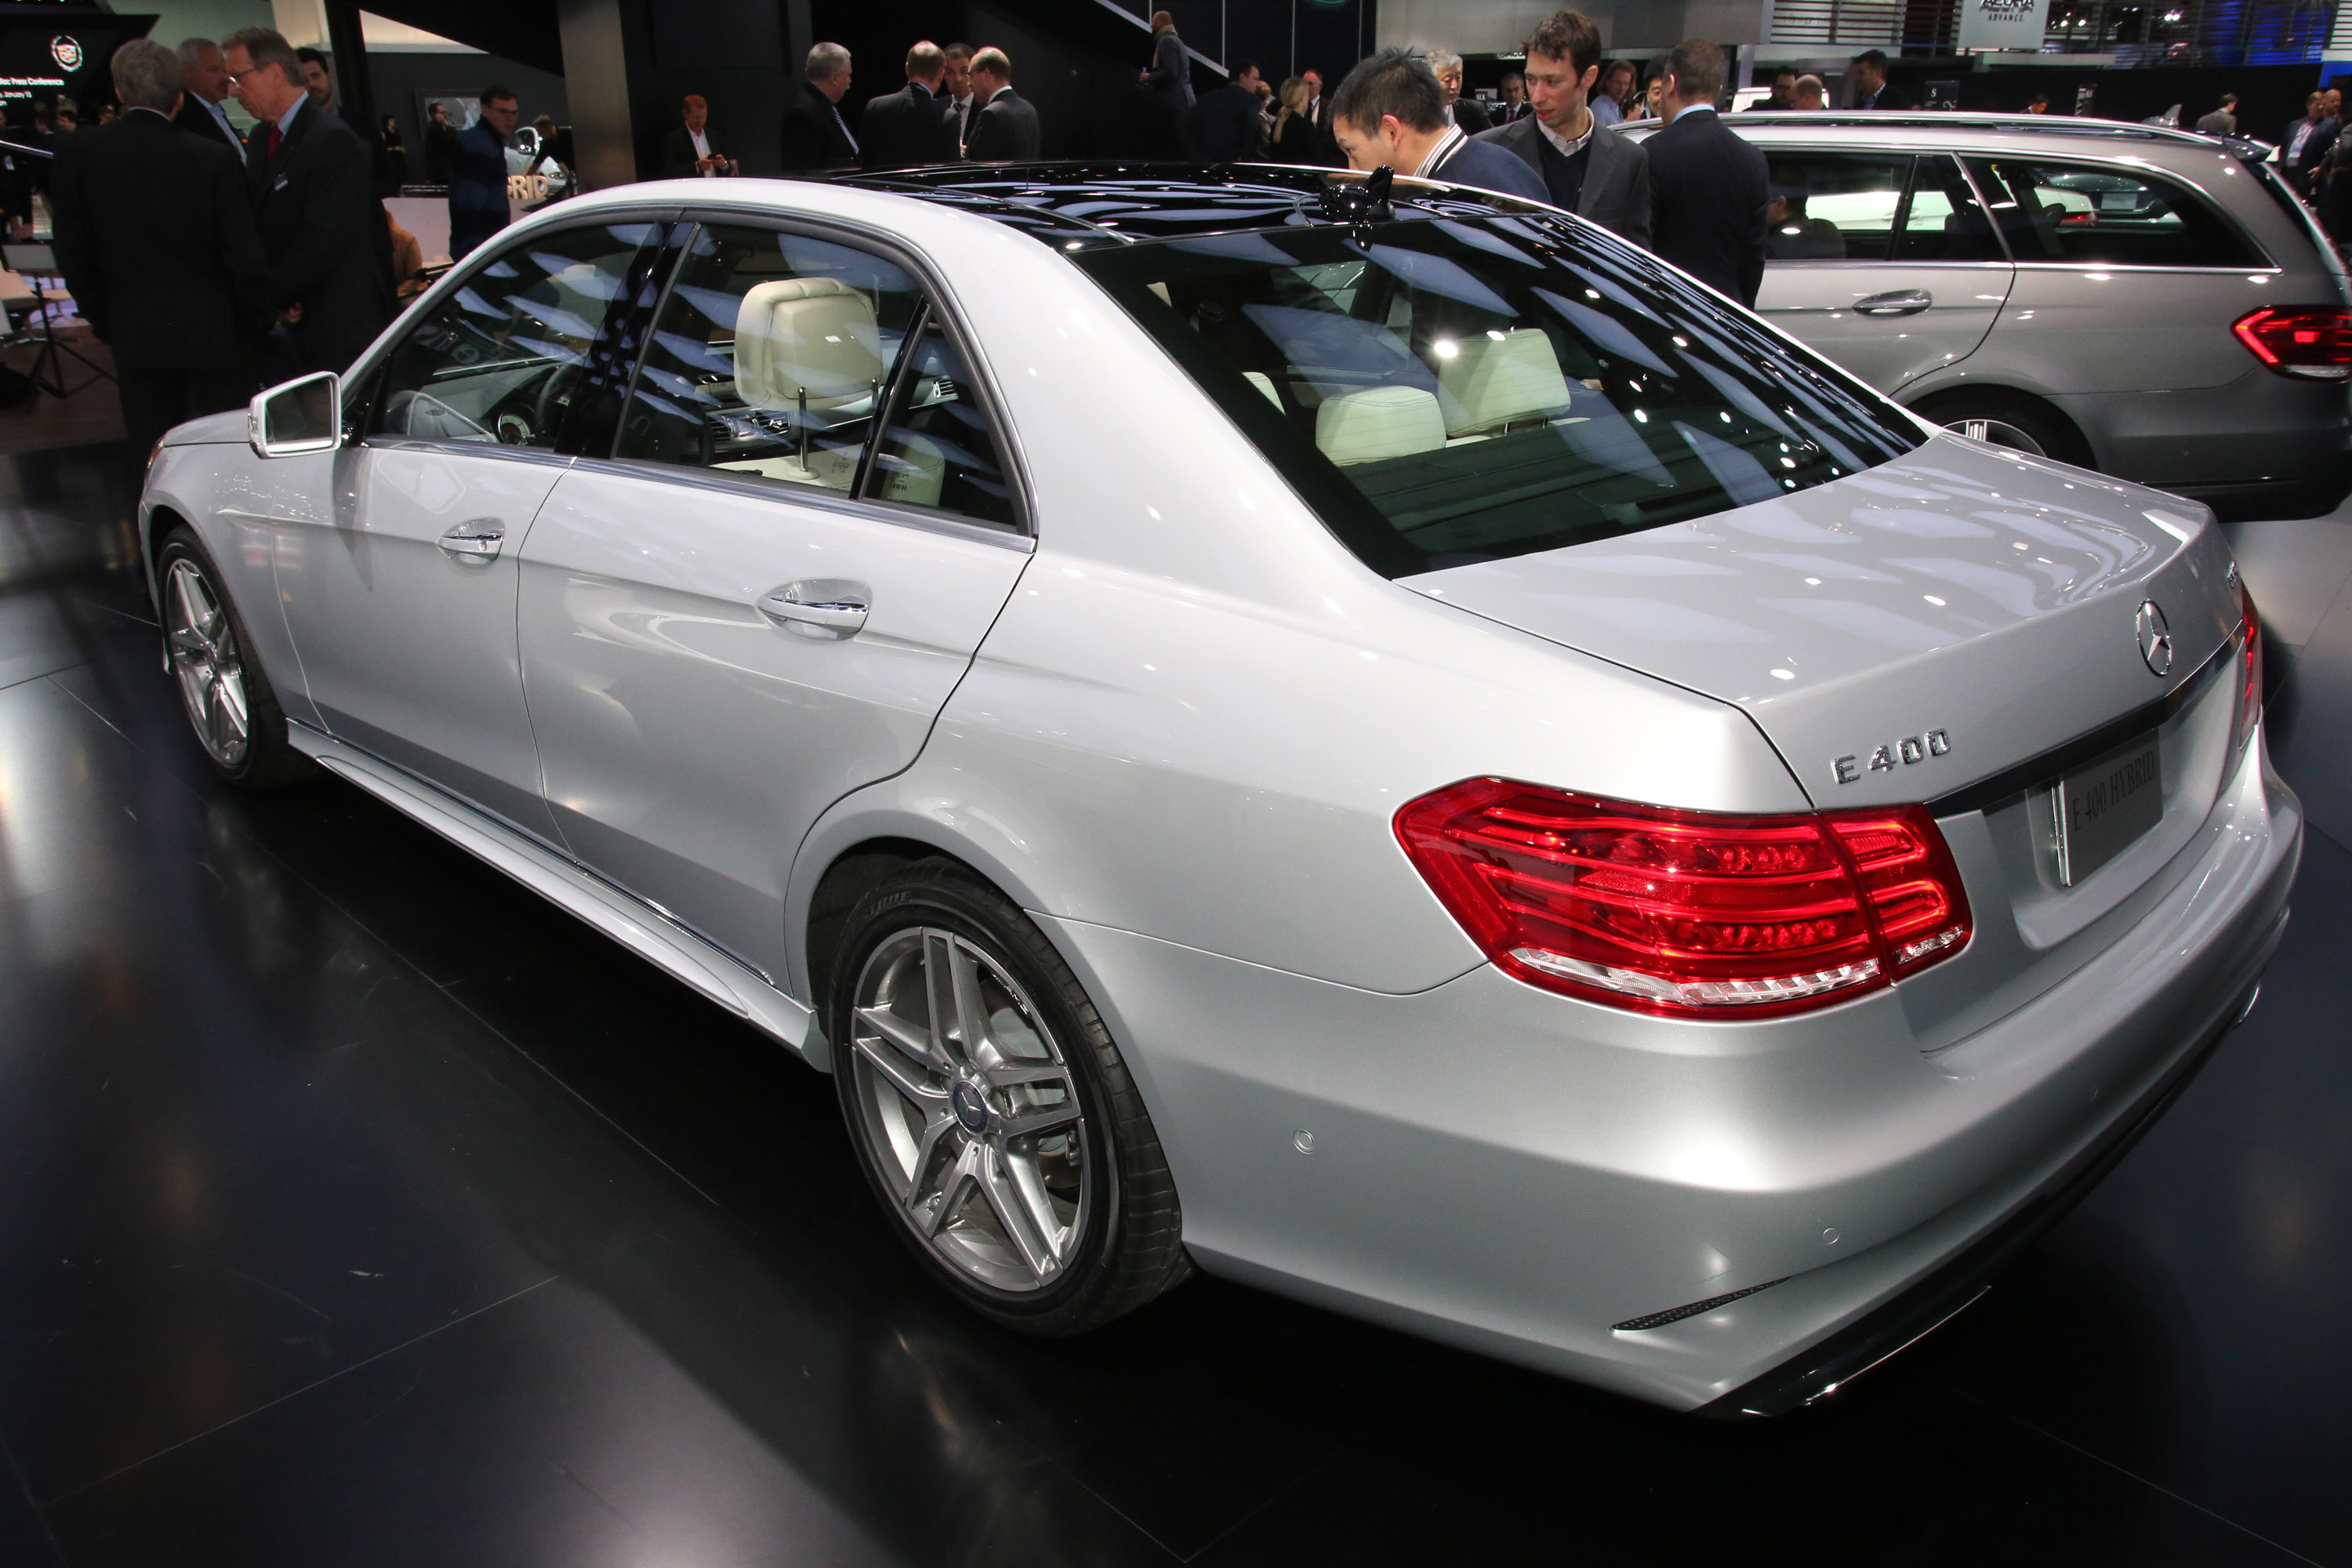 new mercedes benz for sale mercedes benz of south orlando cars. Cars Review. Best American Auto & Cars Review